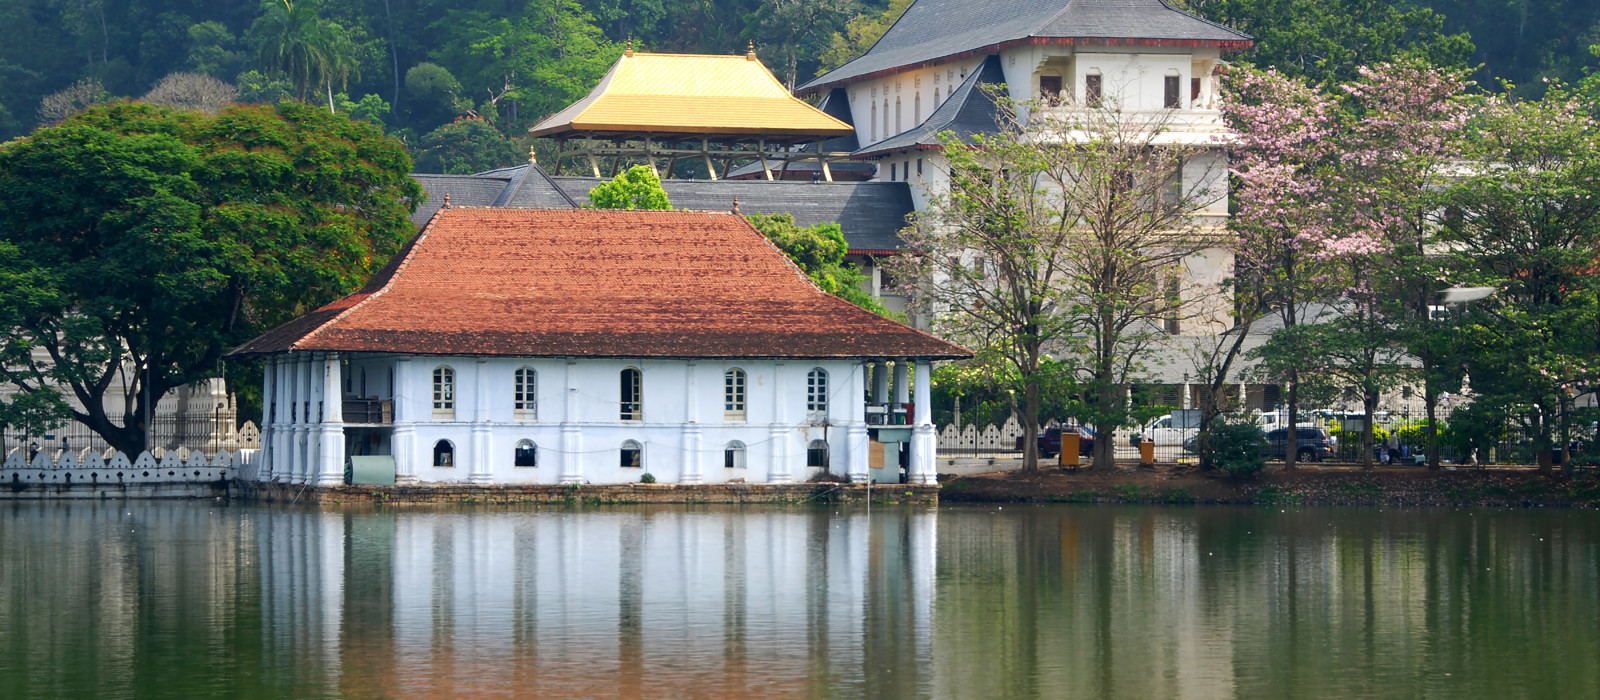 One of the most famous landmarks on Sri Lanka, Temple of the Tooth (Dalada Maligava), Asia